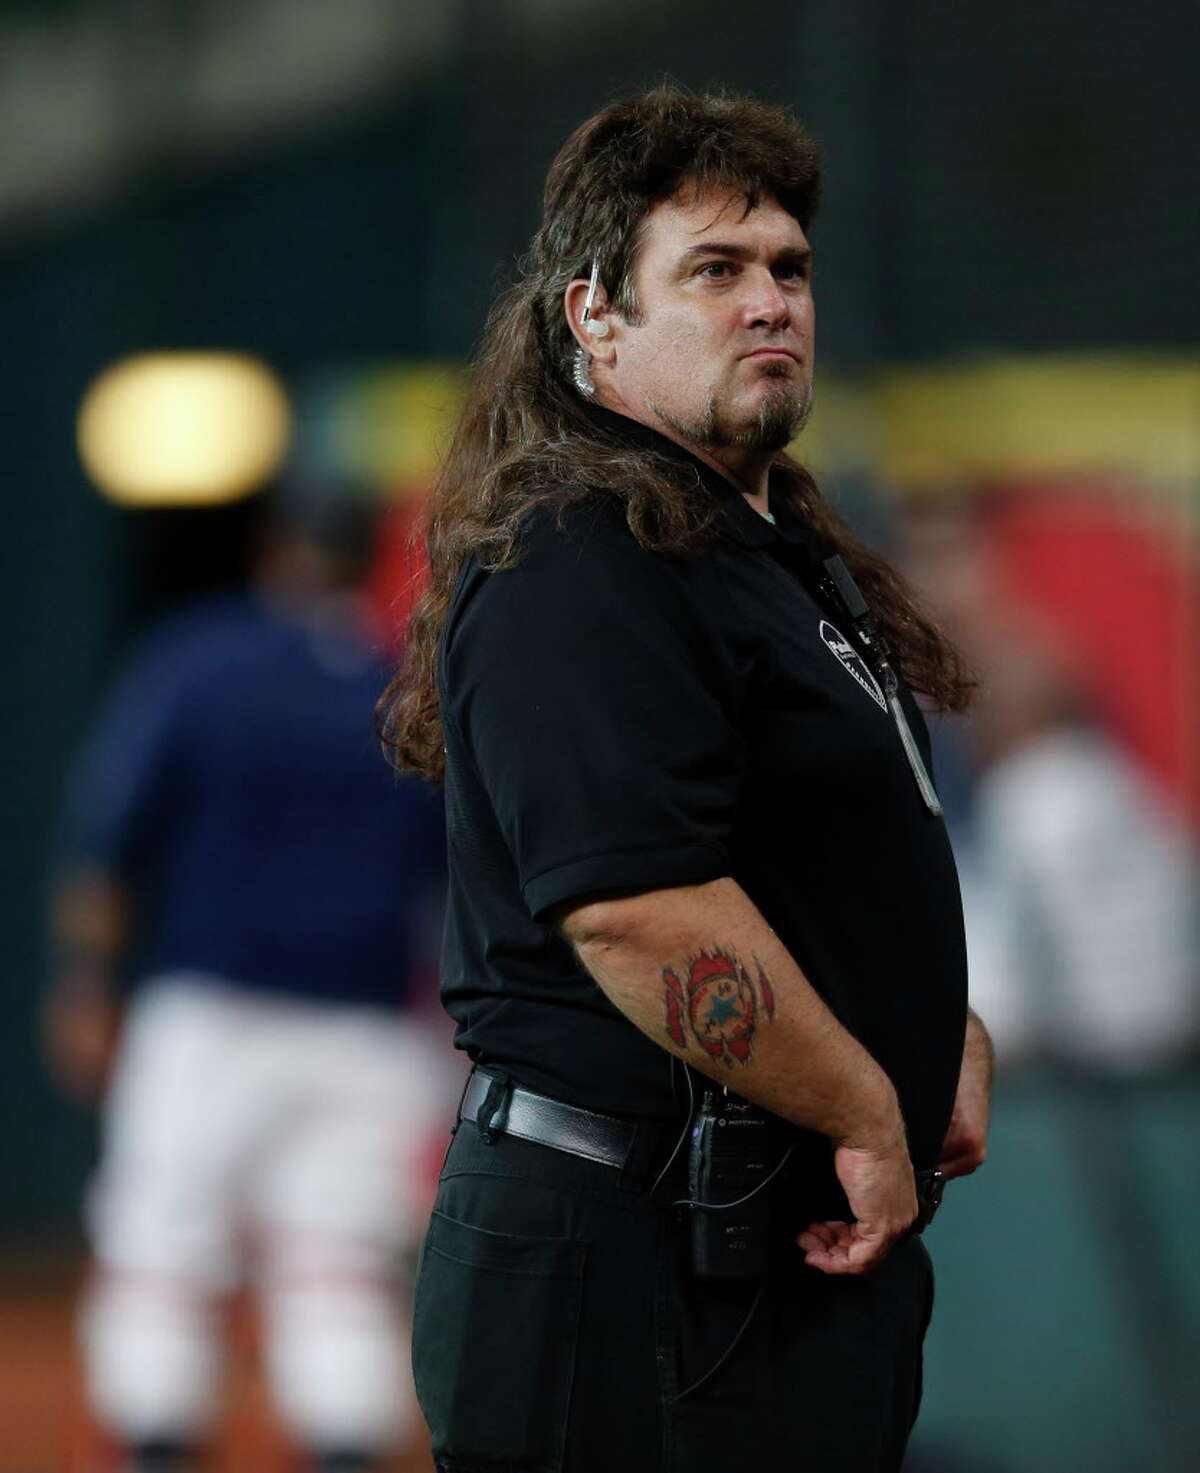 Chaz Taylor, a security guard at the Astros' batting practice before the start of a Major League Baseball game at Minute Maid Park, Tuesday, Aug. 2, 2016, in Houston. Taylor is also a wrestler. ( Karen Warren / Houston Chronicle )